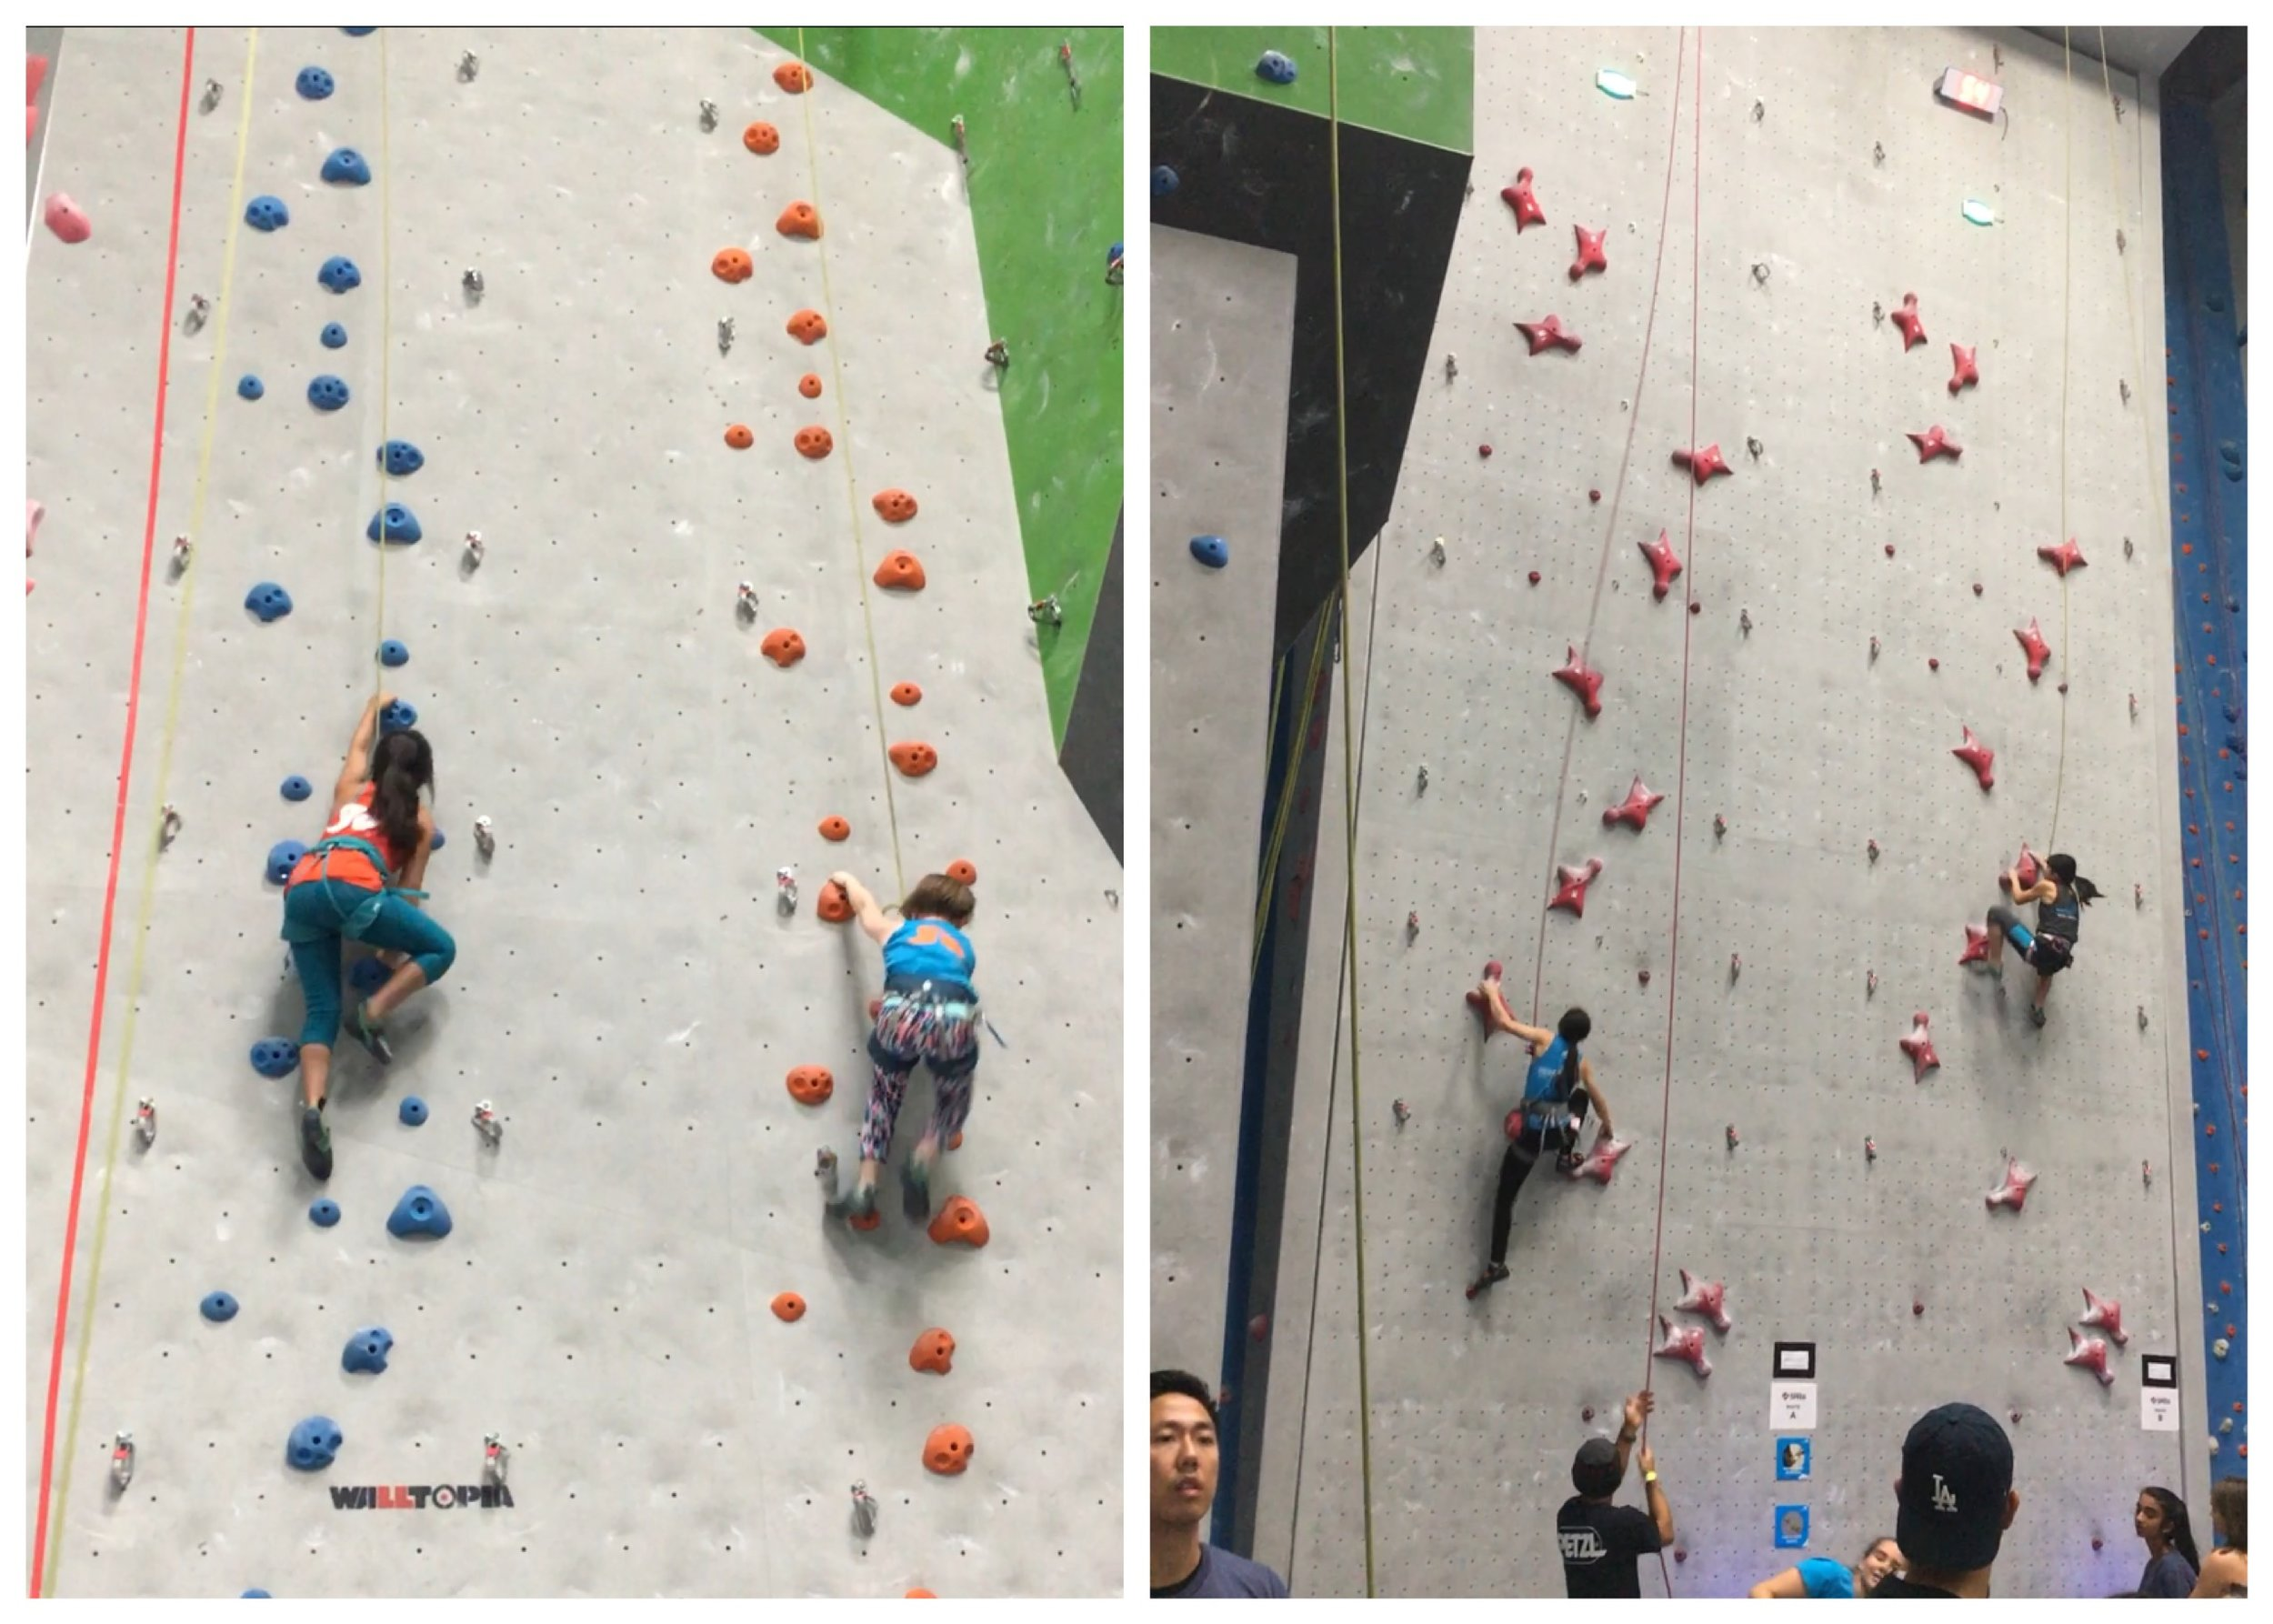 Left side: jug haul style speed climb (cowbell finish not shown). Right side: 10m regulation speed wall with electronic pads and timing (very cool).